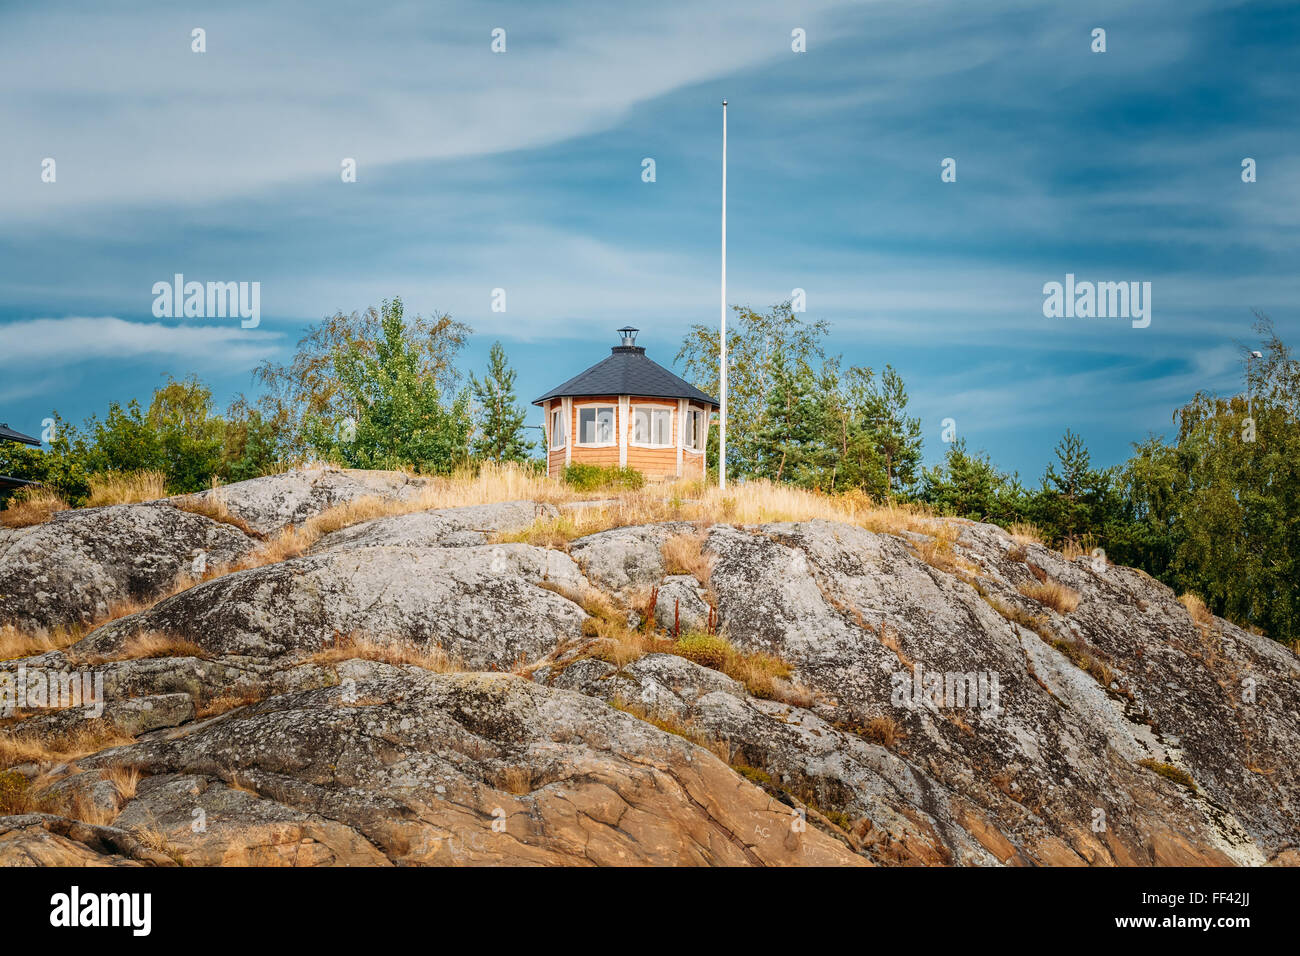 Yellow Finnish Lookout Wooden House On Rock In Island In Summer - Stock Image